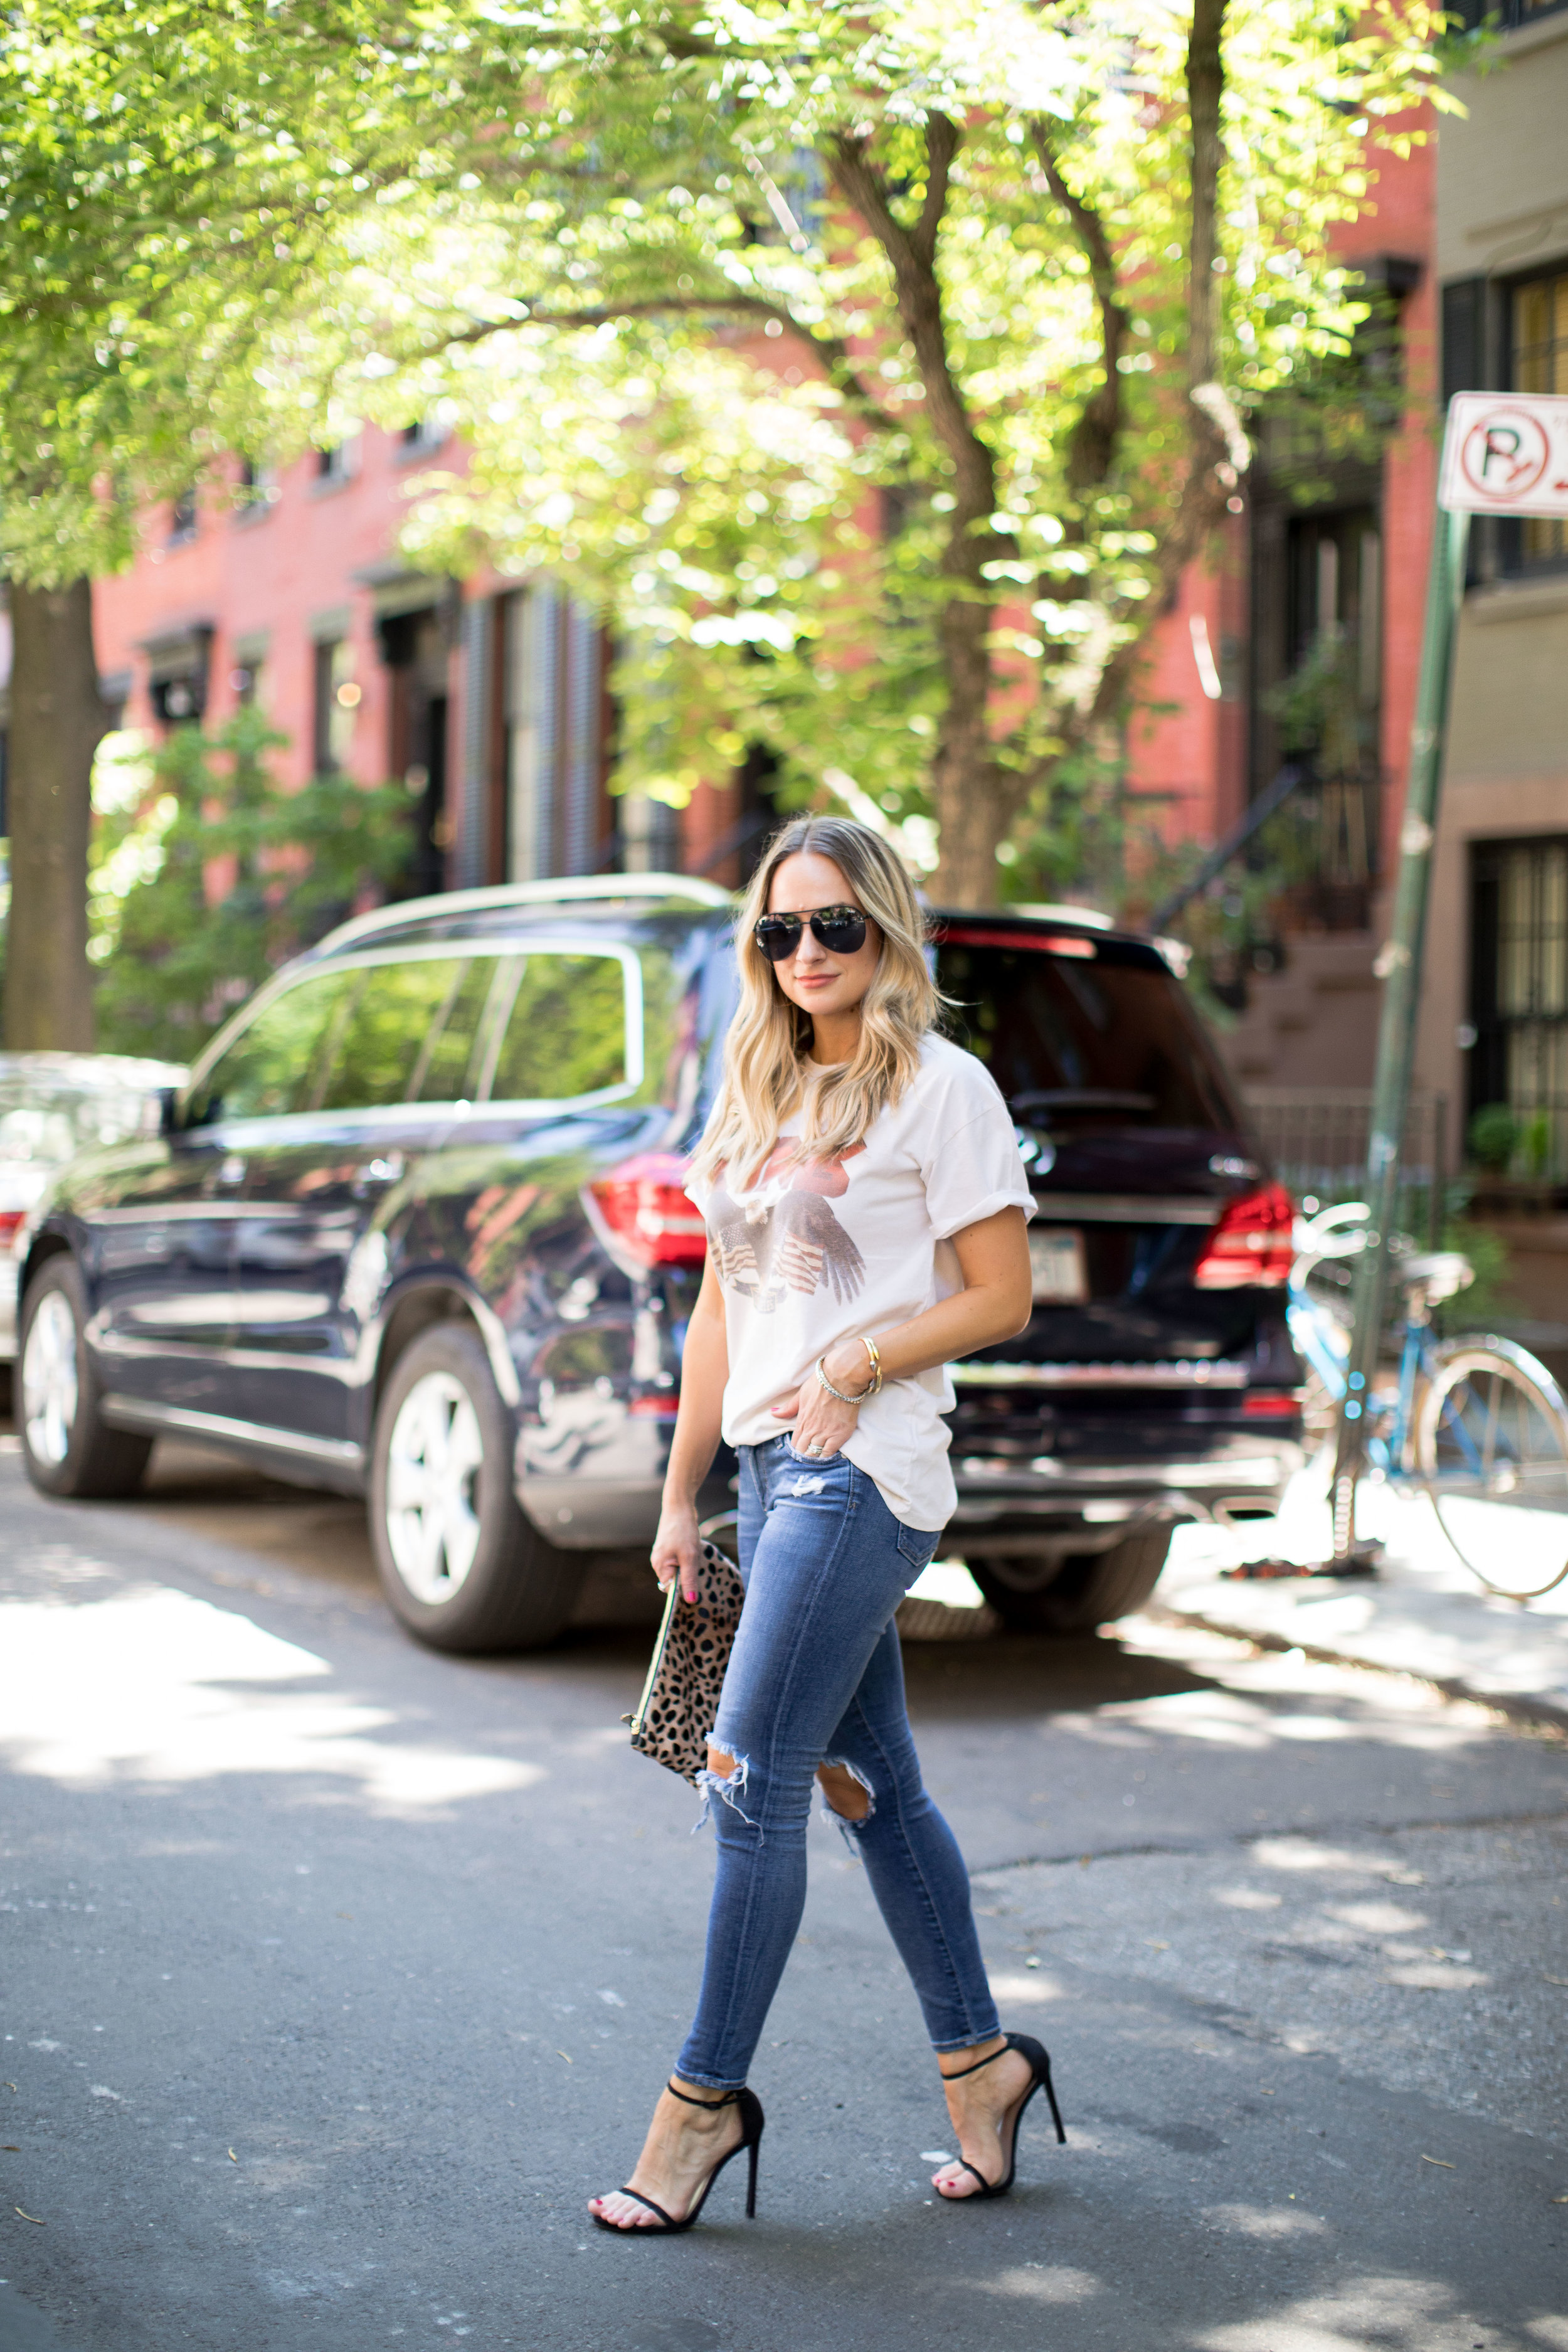 vintage t-shirt and jeans